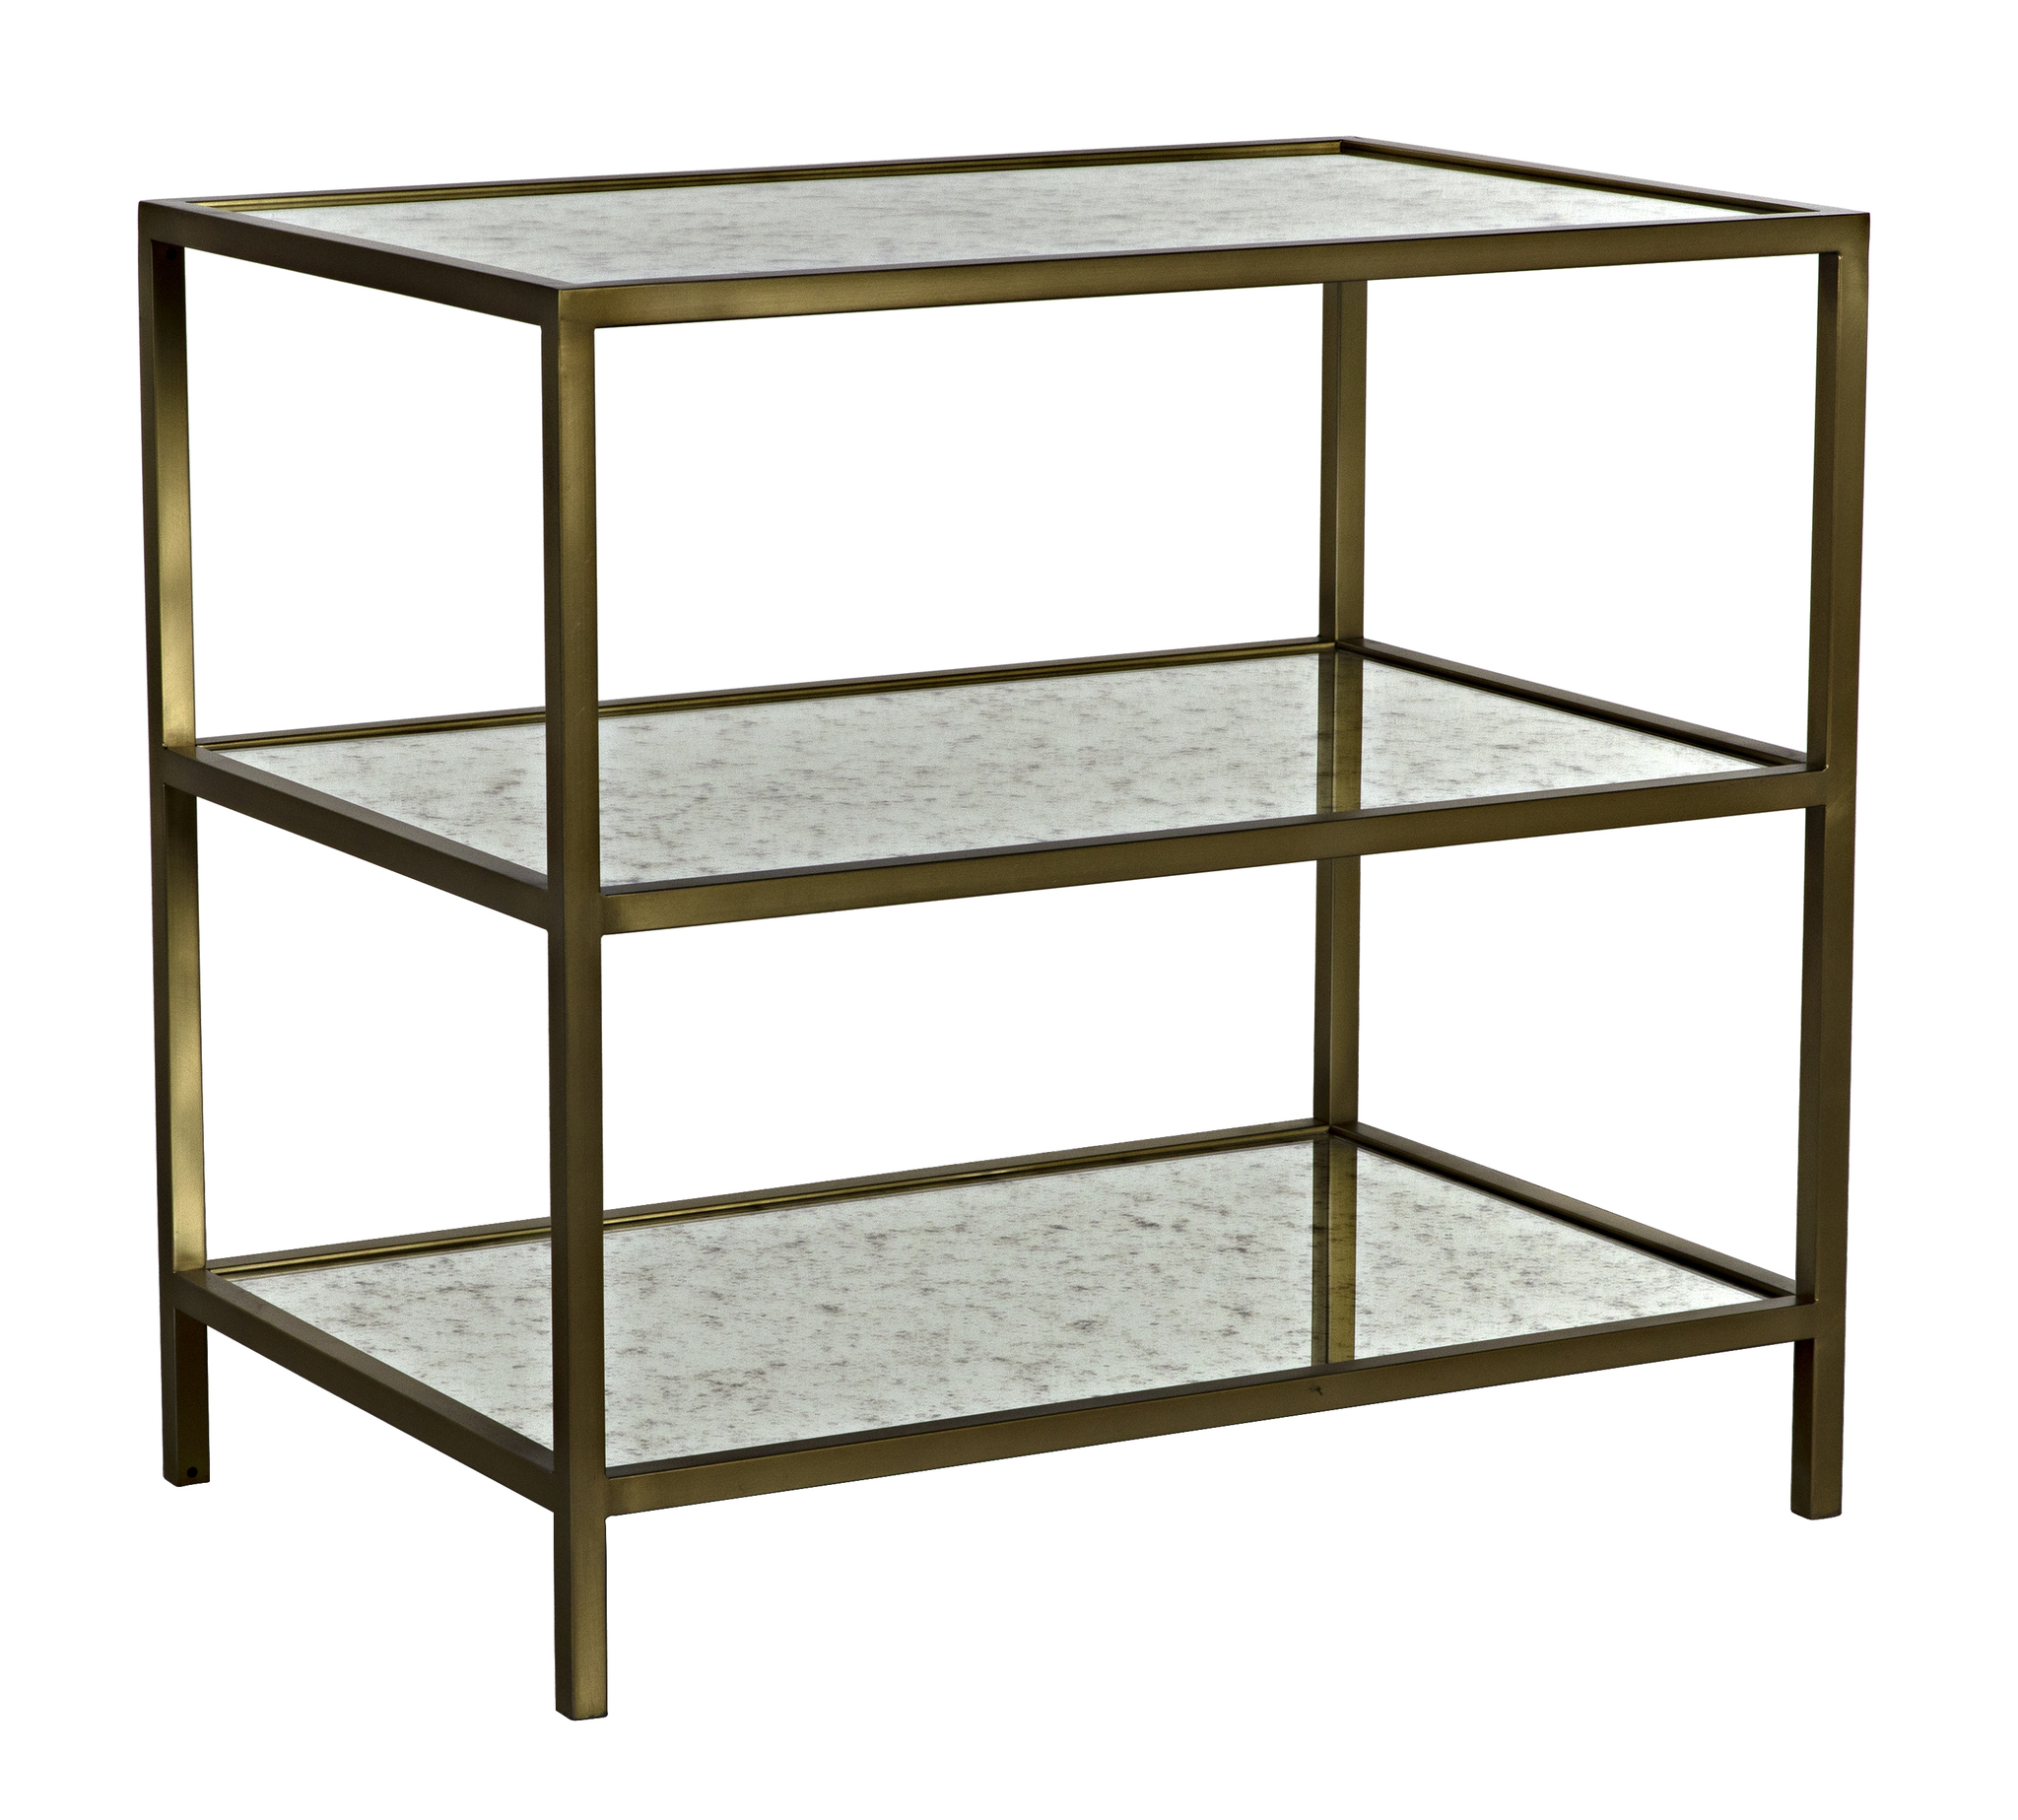 antique brass side table 3 Tier Side Table, Antique Brass, Metal and Antique Mirror  antique brass side table